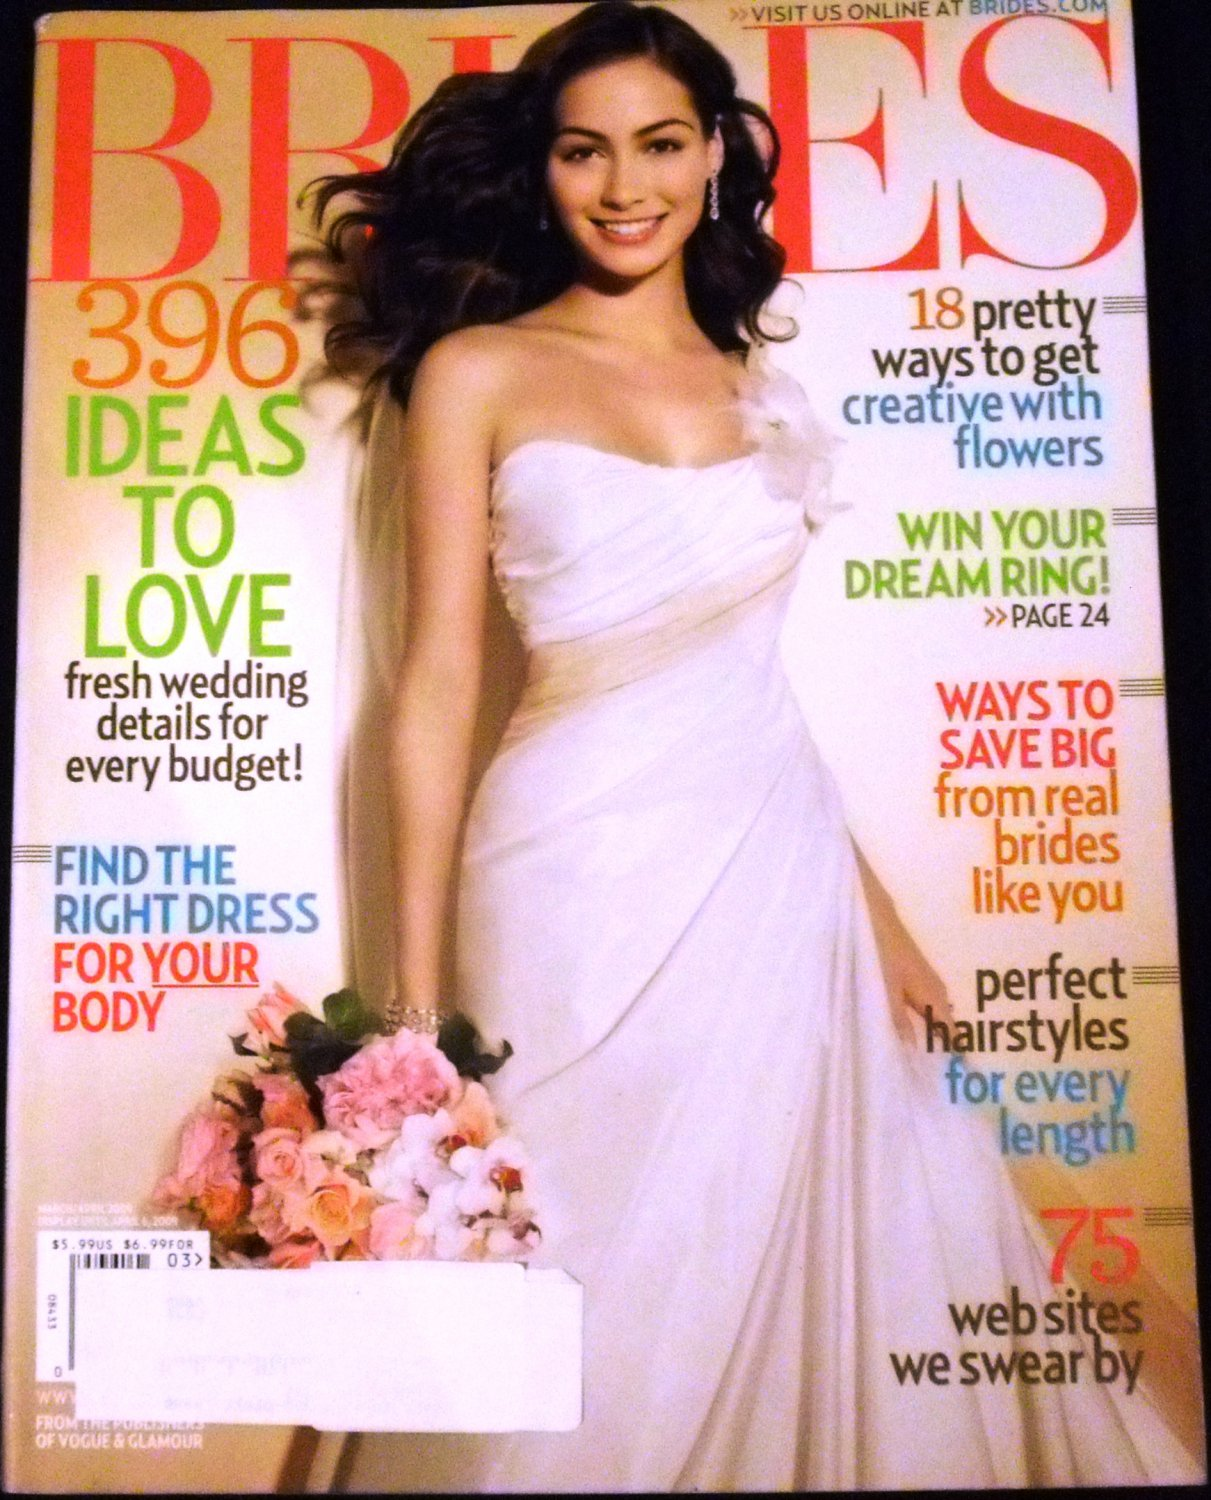 Brides Magazine March April 2009